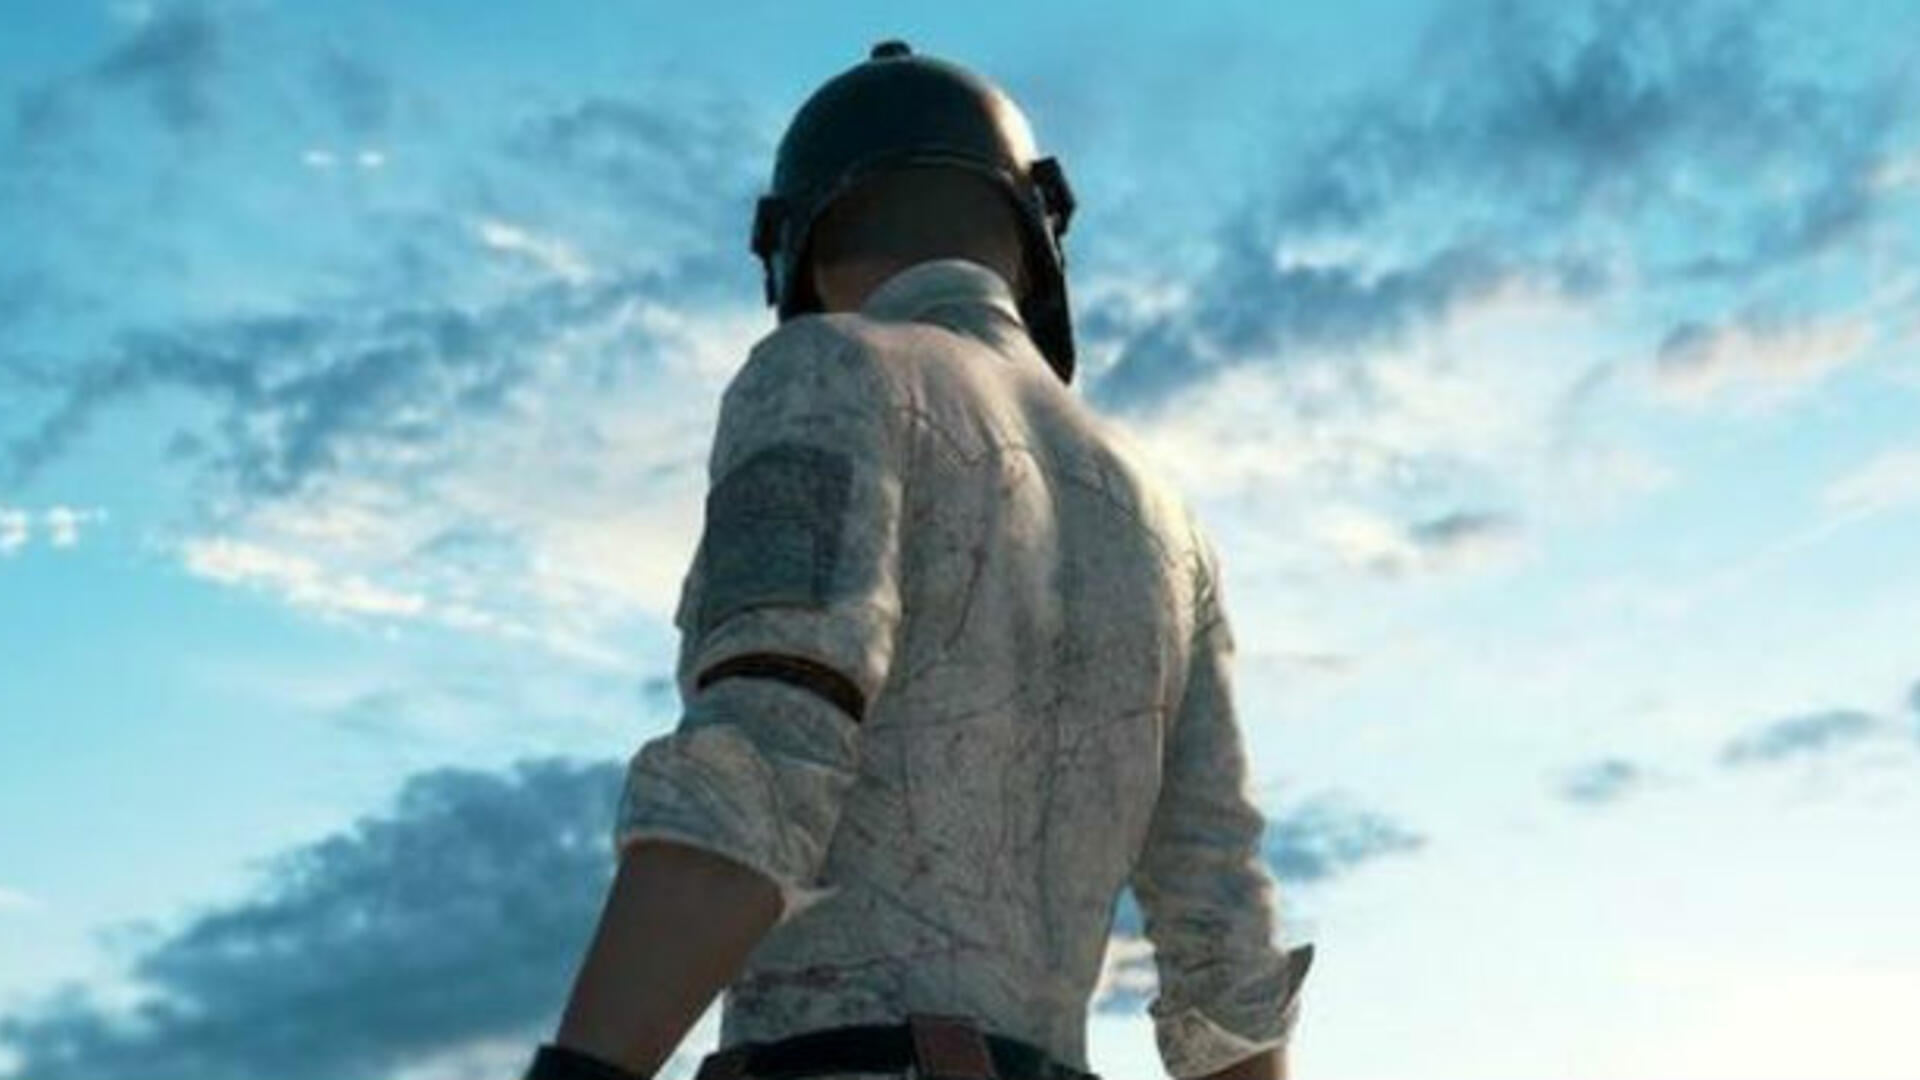 Pubg On Xbox Is Getting A New Xbox One X Bundle As It